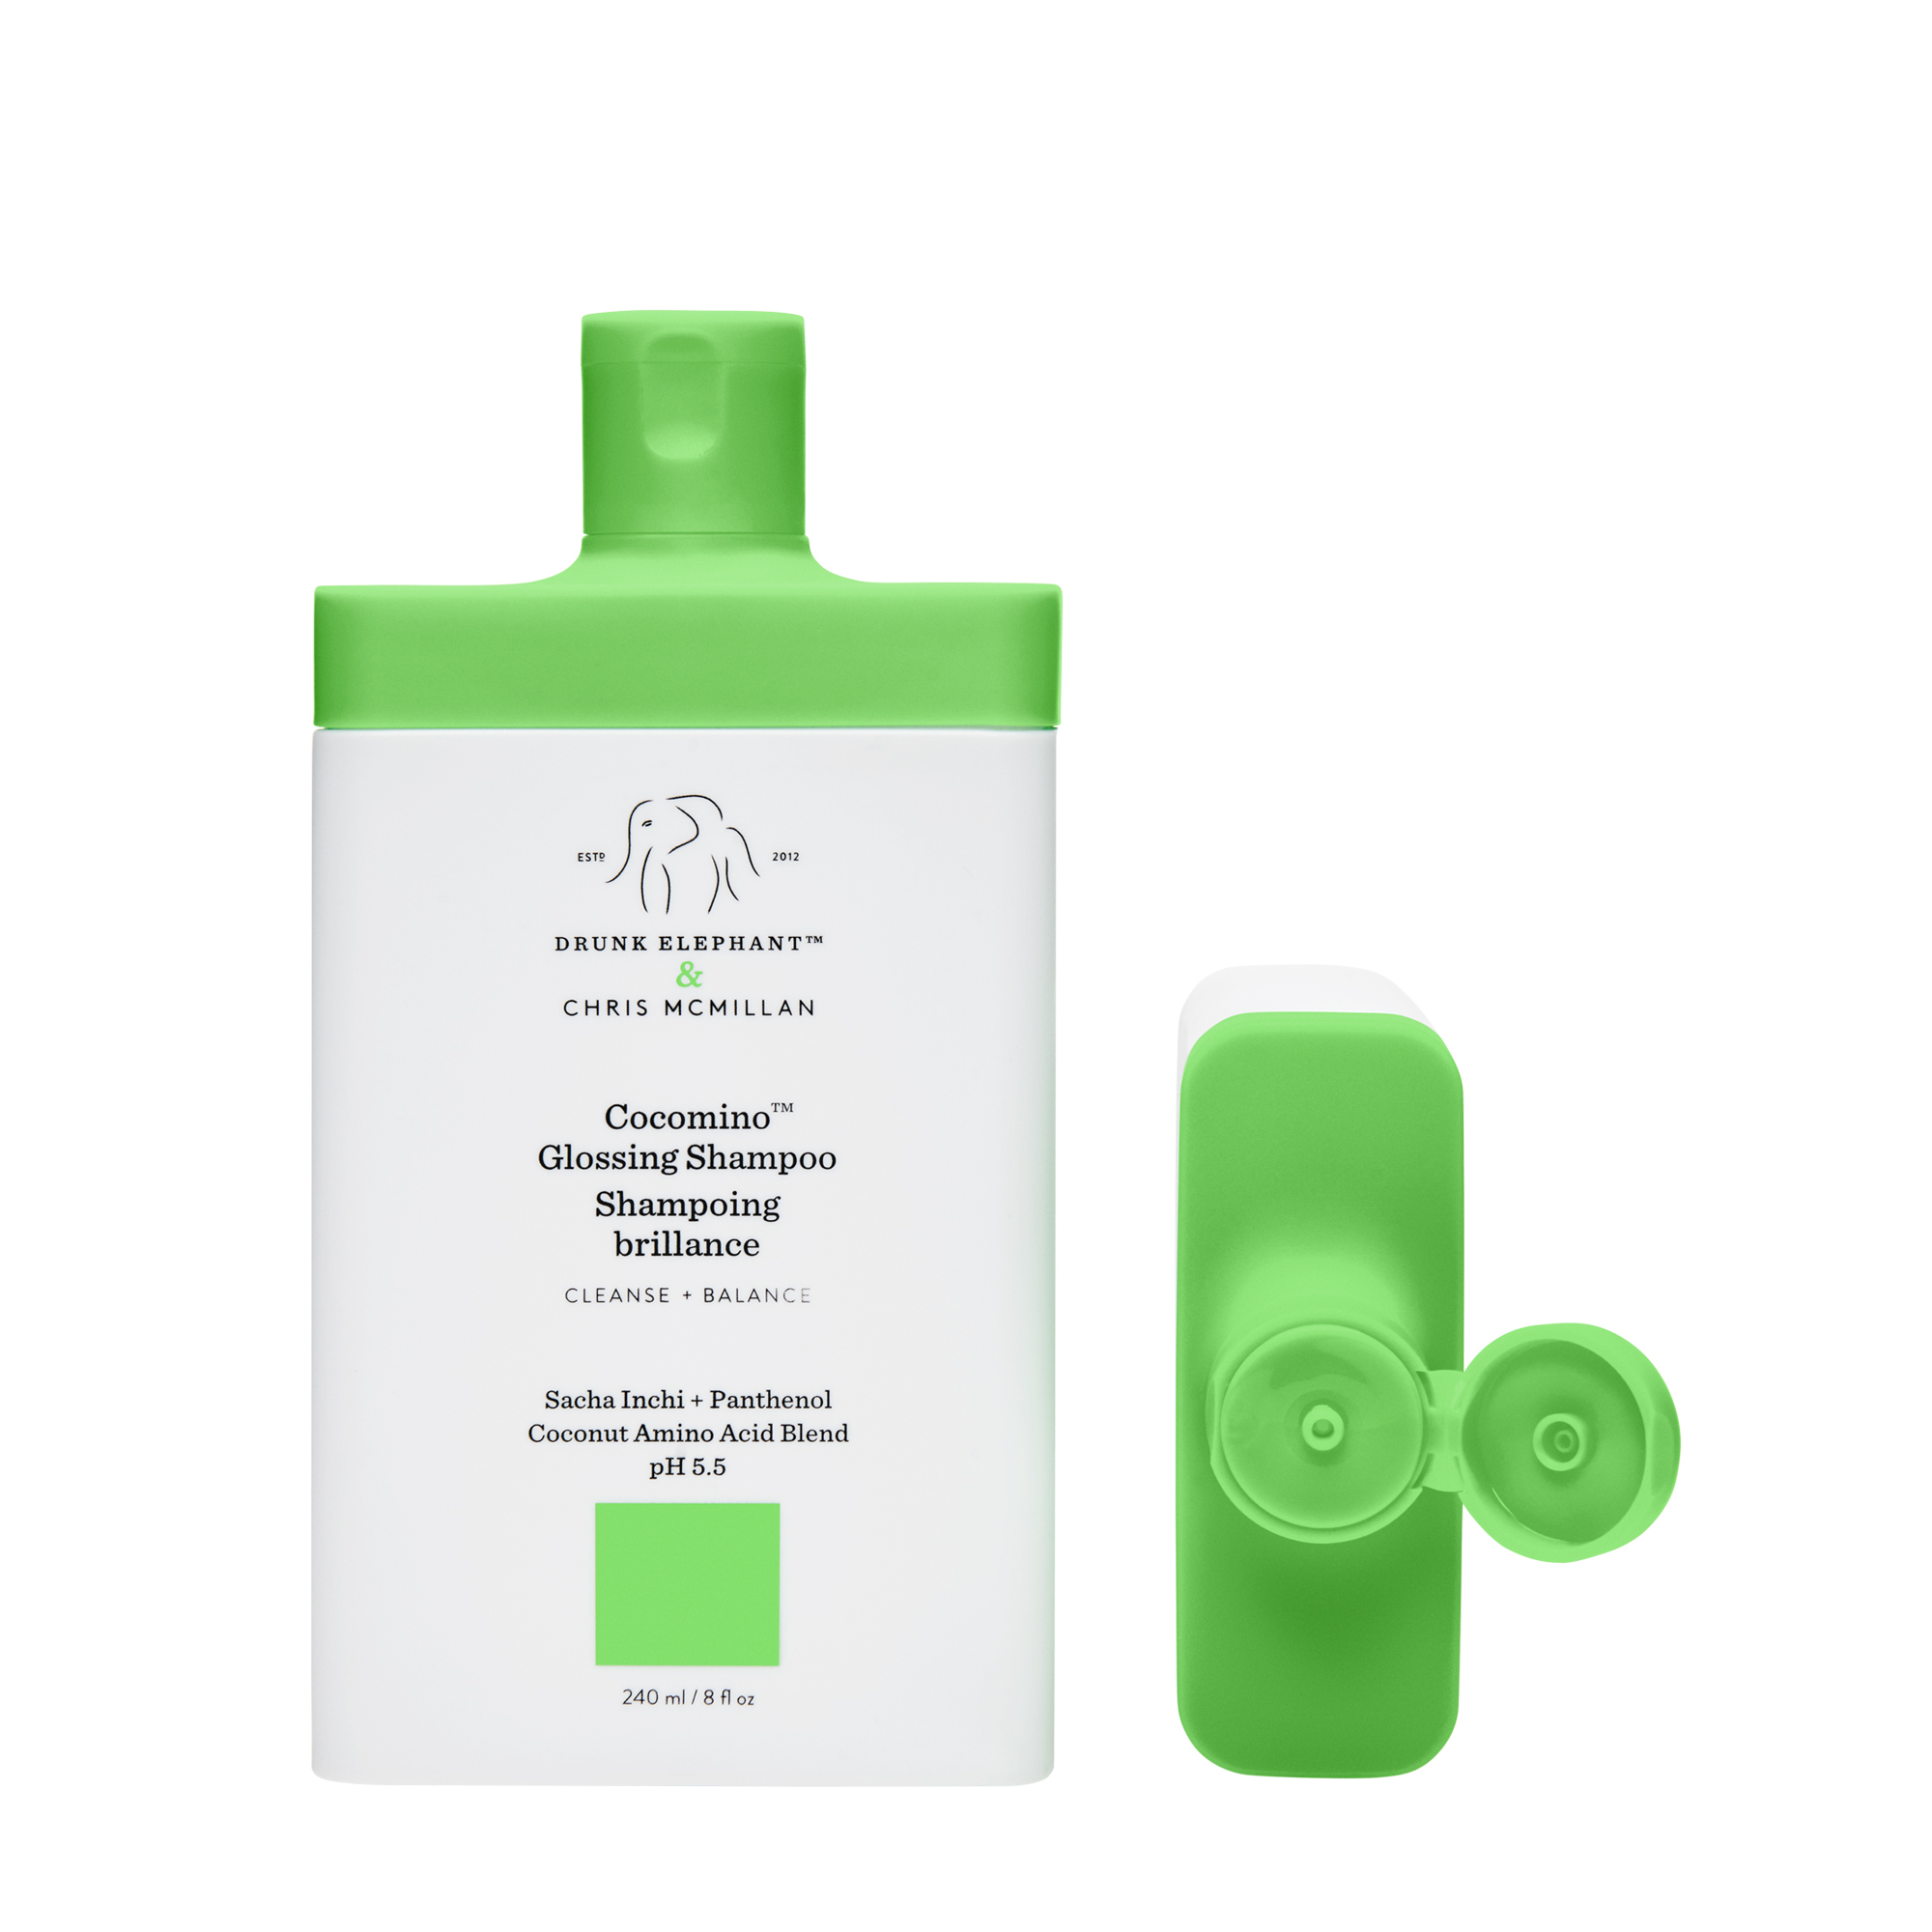 Cocomino Glossing Shampoo by Drunk Elephant